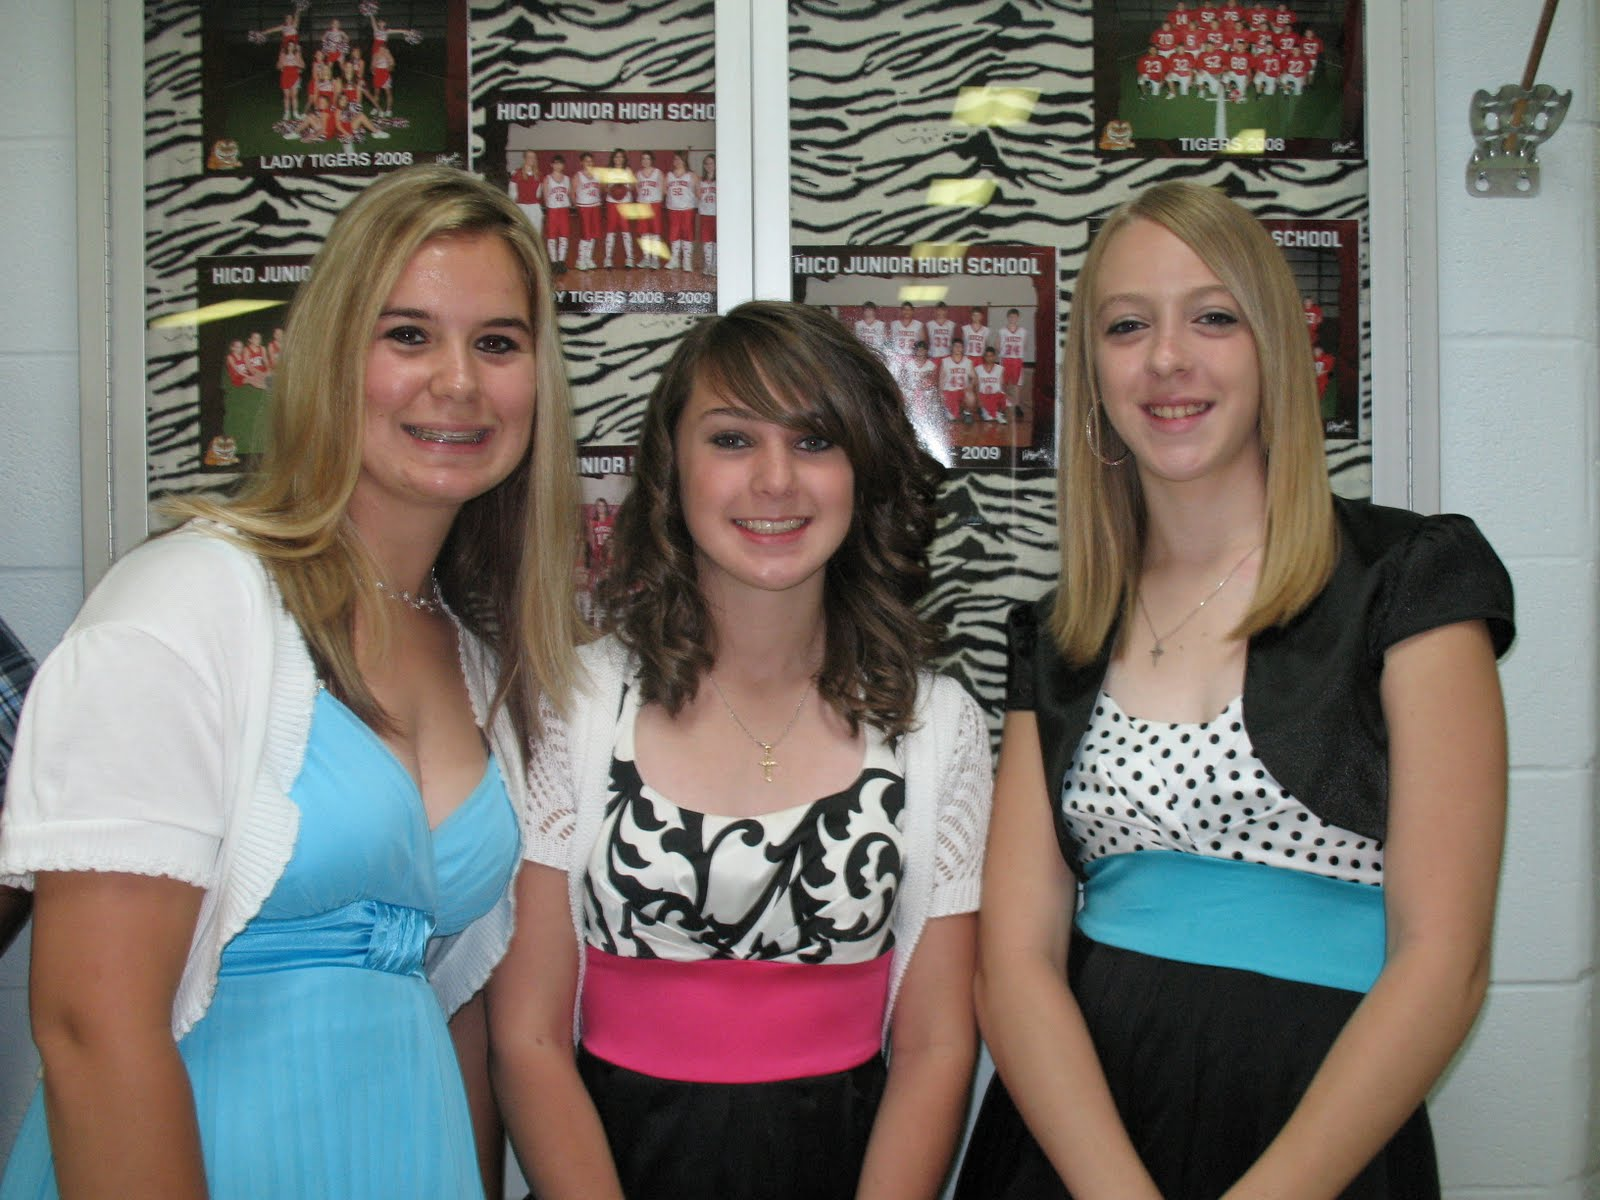 8th Grade Pictures To Pin